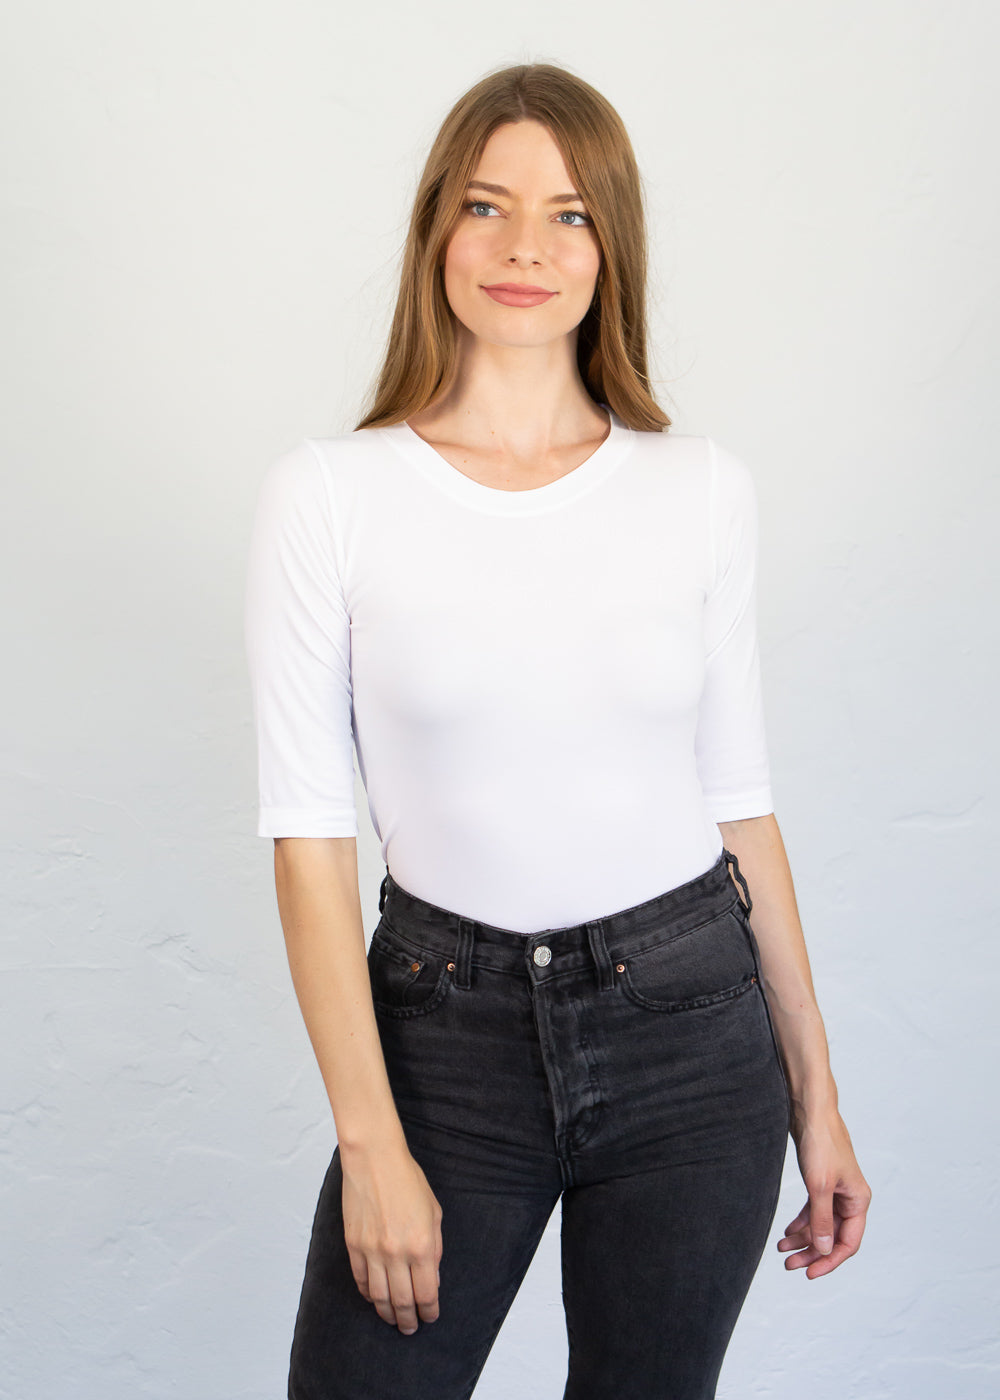 Elbow Sleeve Top - Back in Stock!